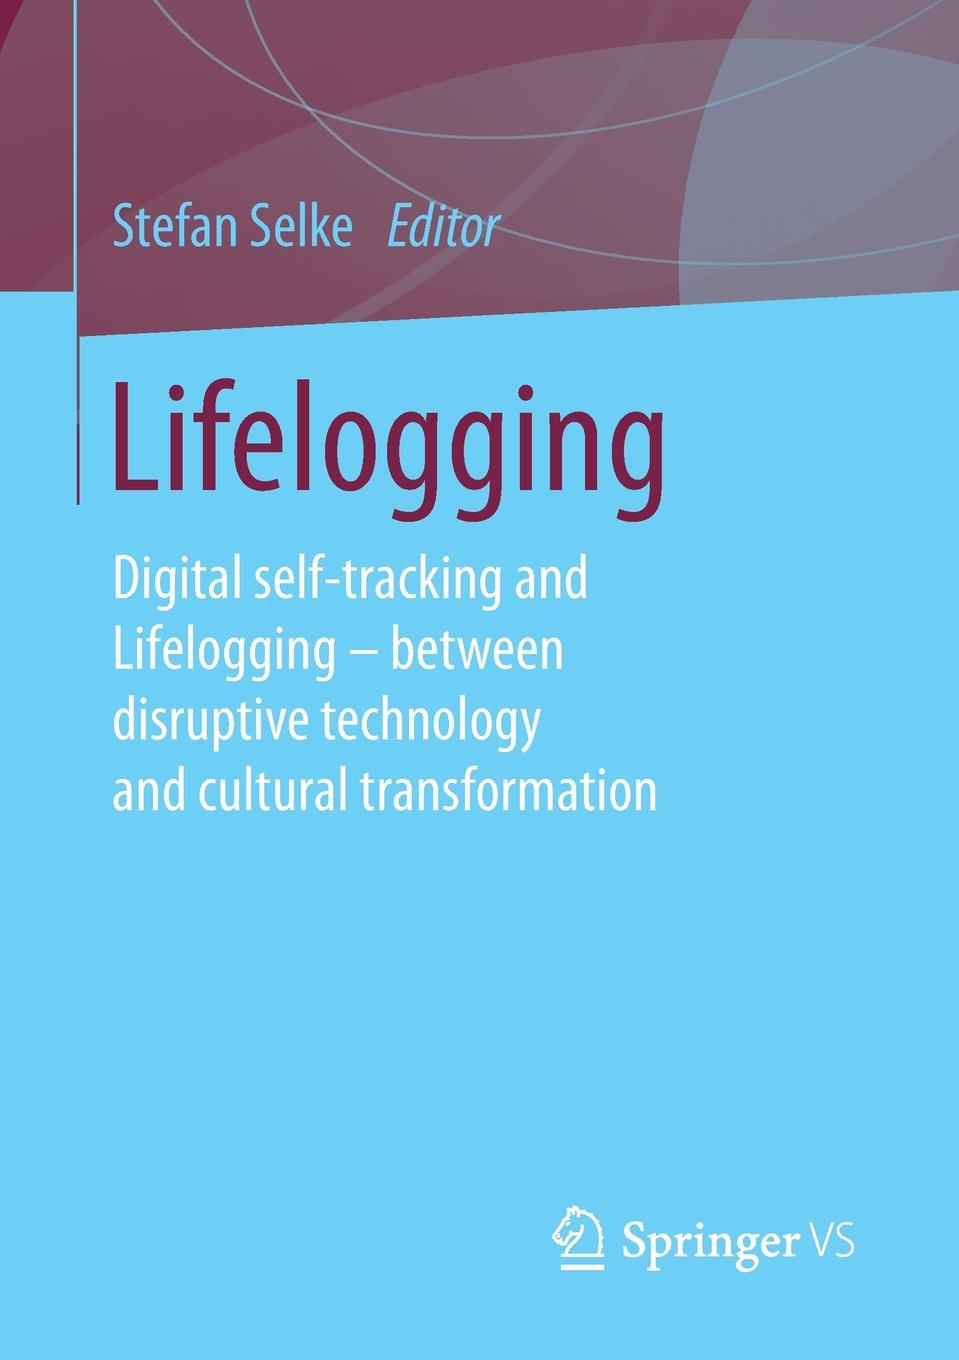 Lifelogging. Digital self-tracking and Lifelogging - between disruptive technology and cultural transformation